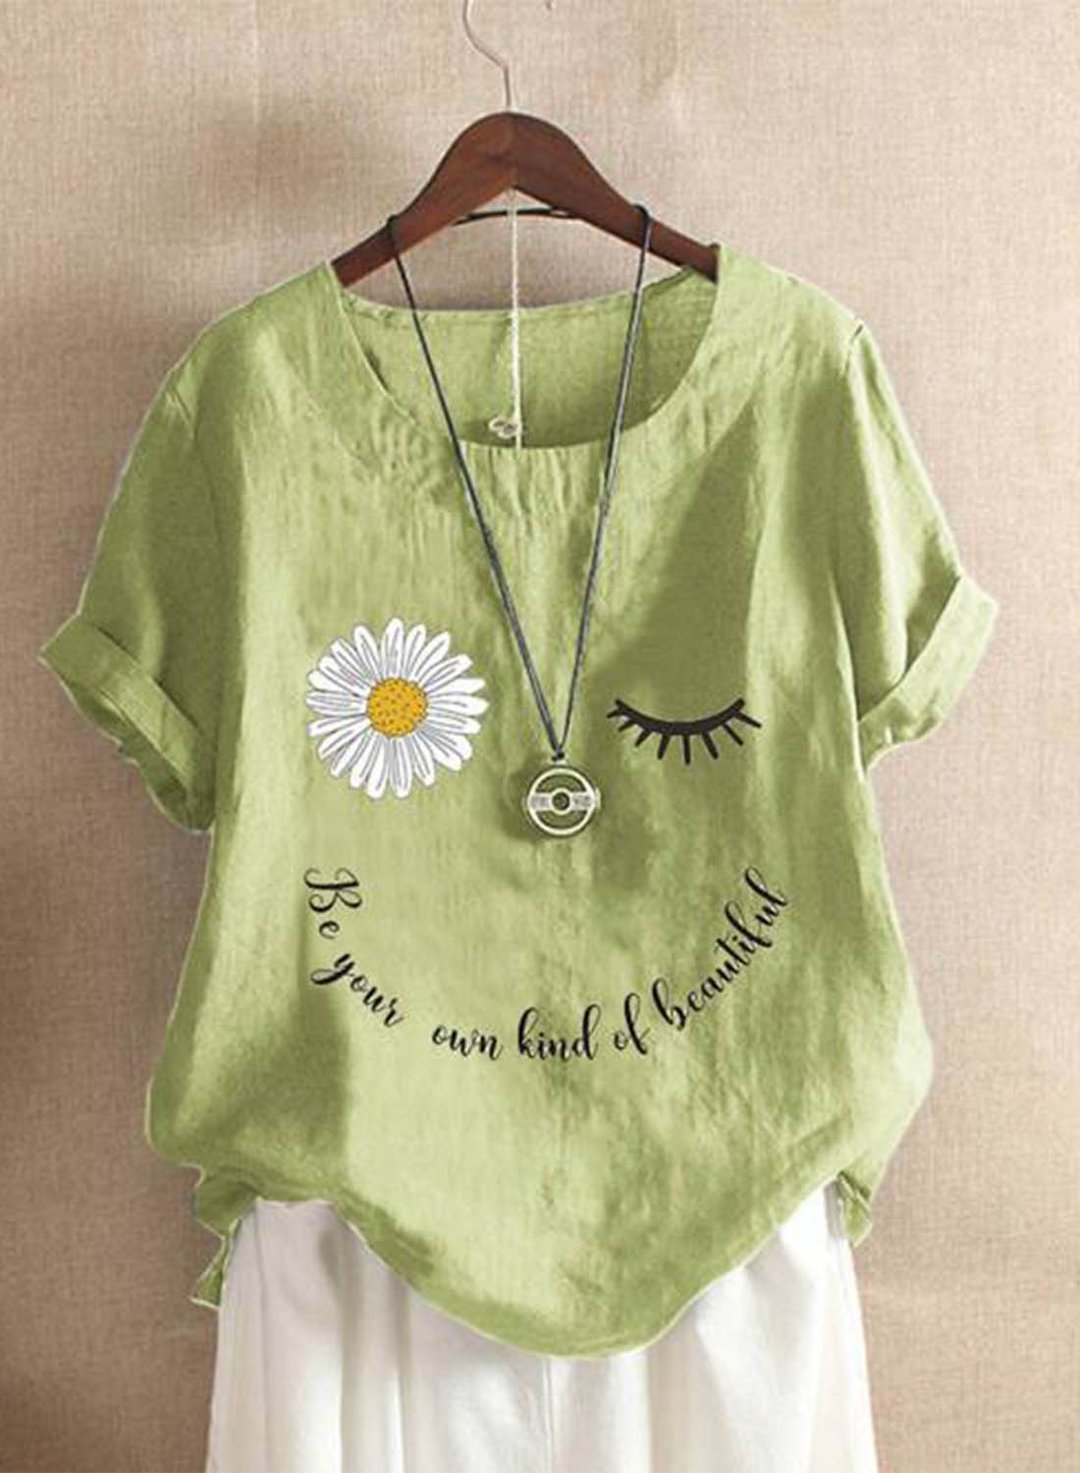 Green Women's T-shirts Casual Solid Floral Letter Round Neck Short Sleeve Daily Casual T-shirts LC2516904-9